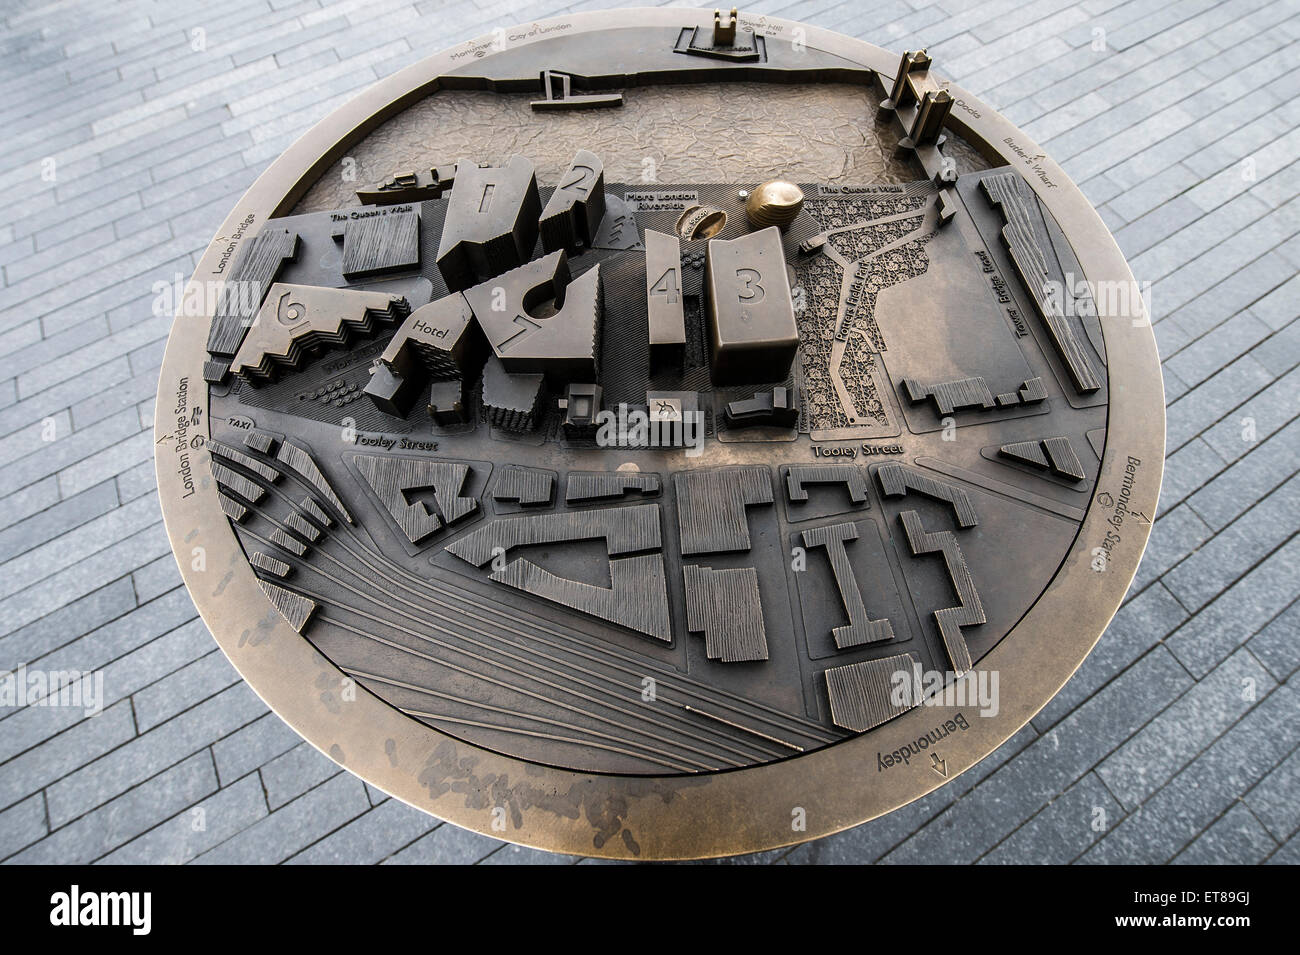 Brass 3D map of the surrounding area of more London and the River Thames Stock Photo